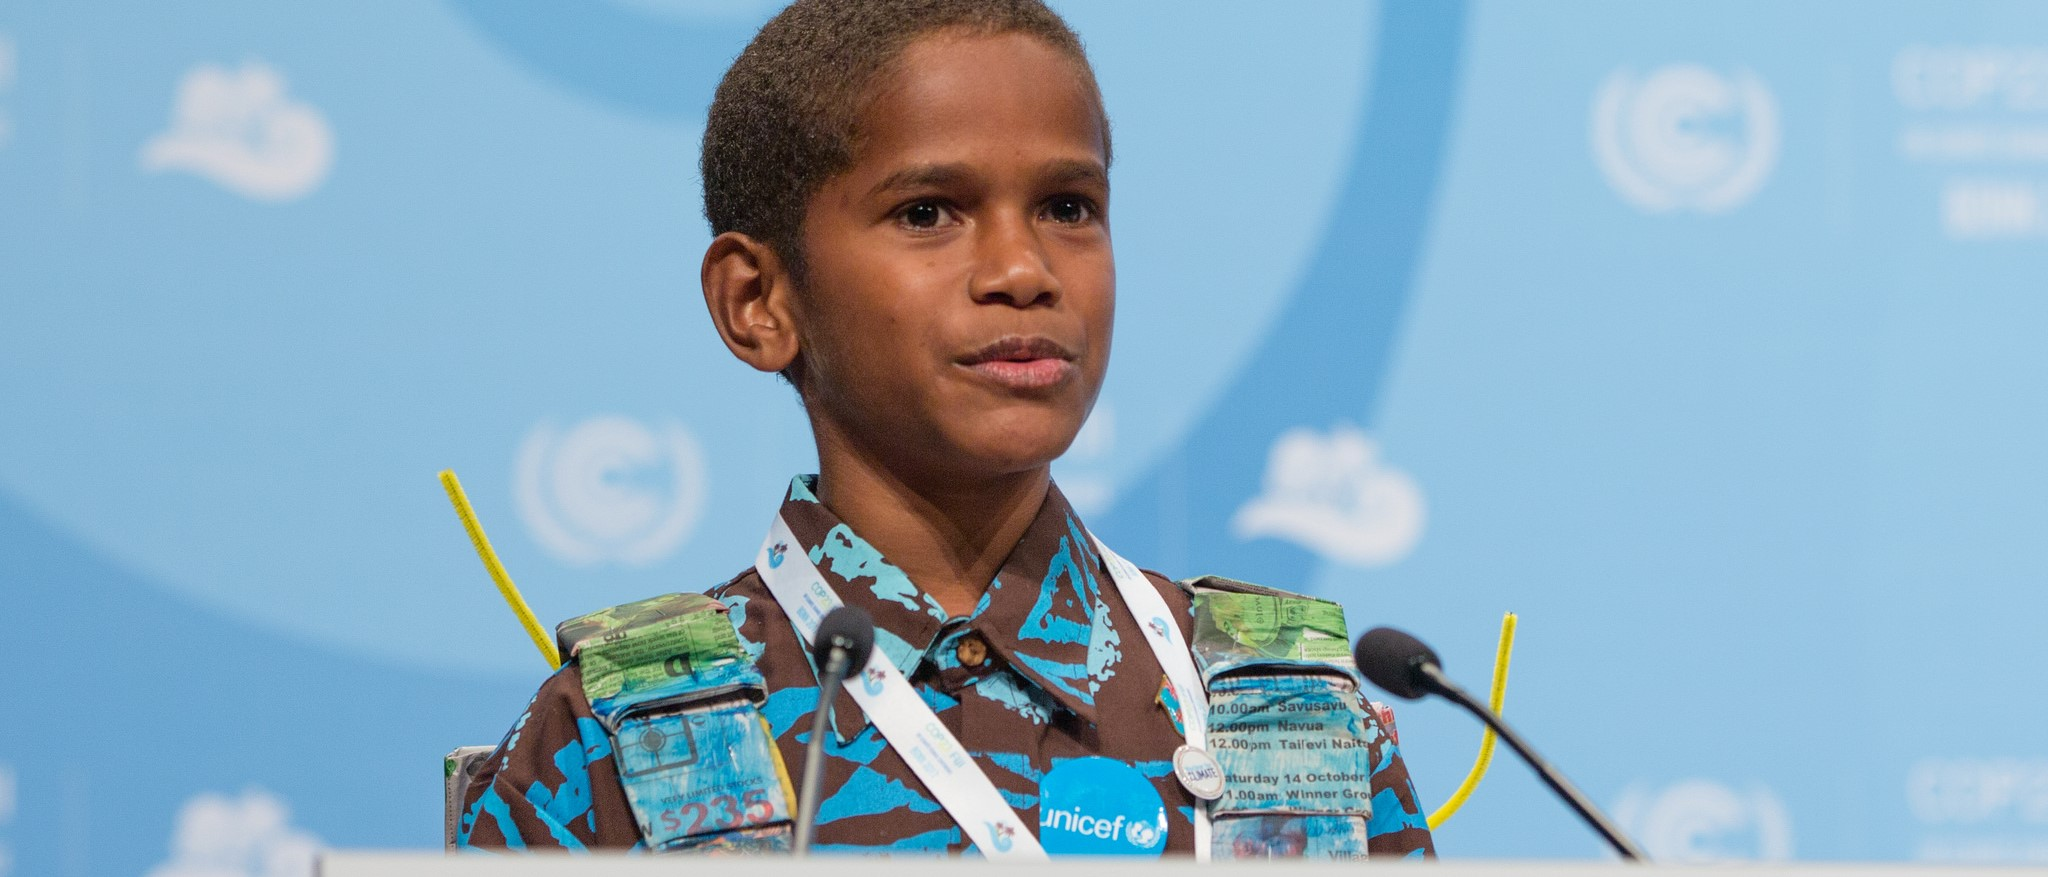 Timoci Naulusala addressing COP23, November 2017 (Photo: UNclimatechange/Flickr)